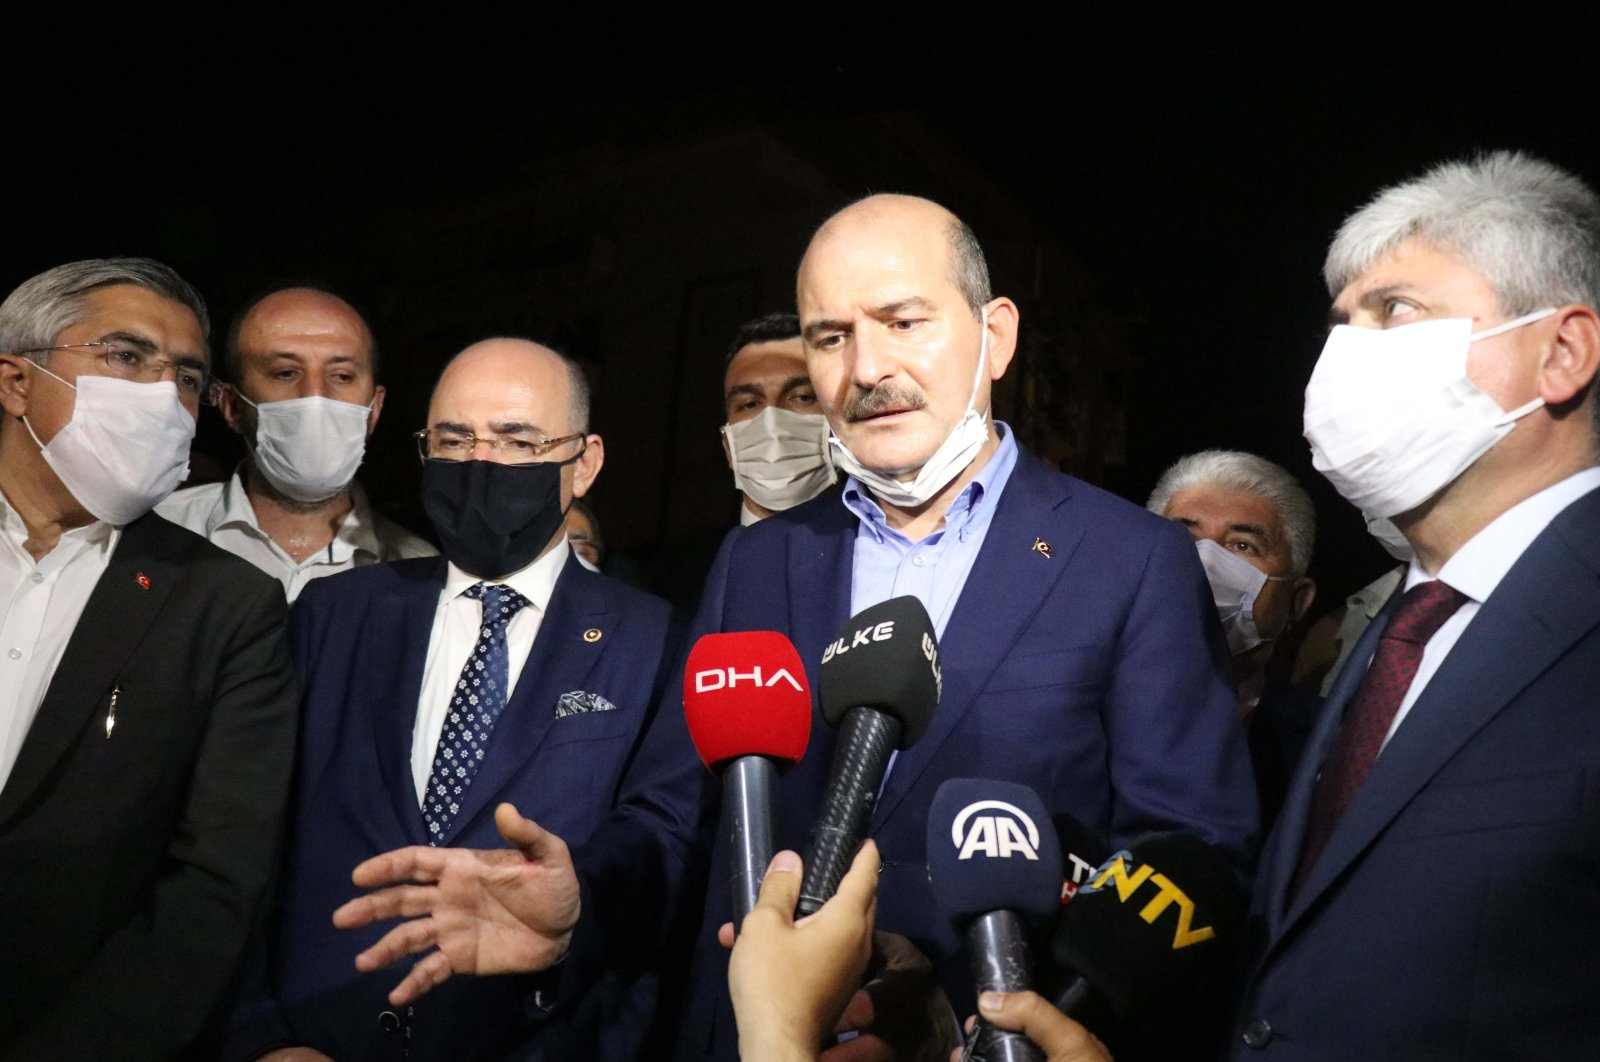 Interior Minister Süleyman Soylu (C) speaks to reporters in Hatay on Oct. 11, 2020. (AA Photo)